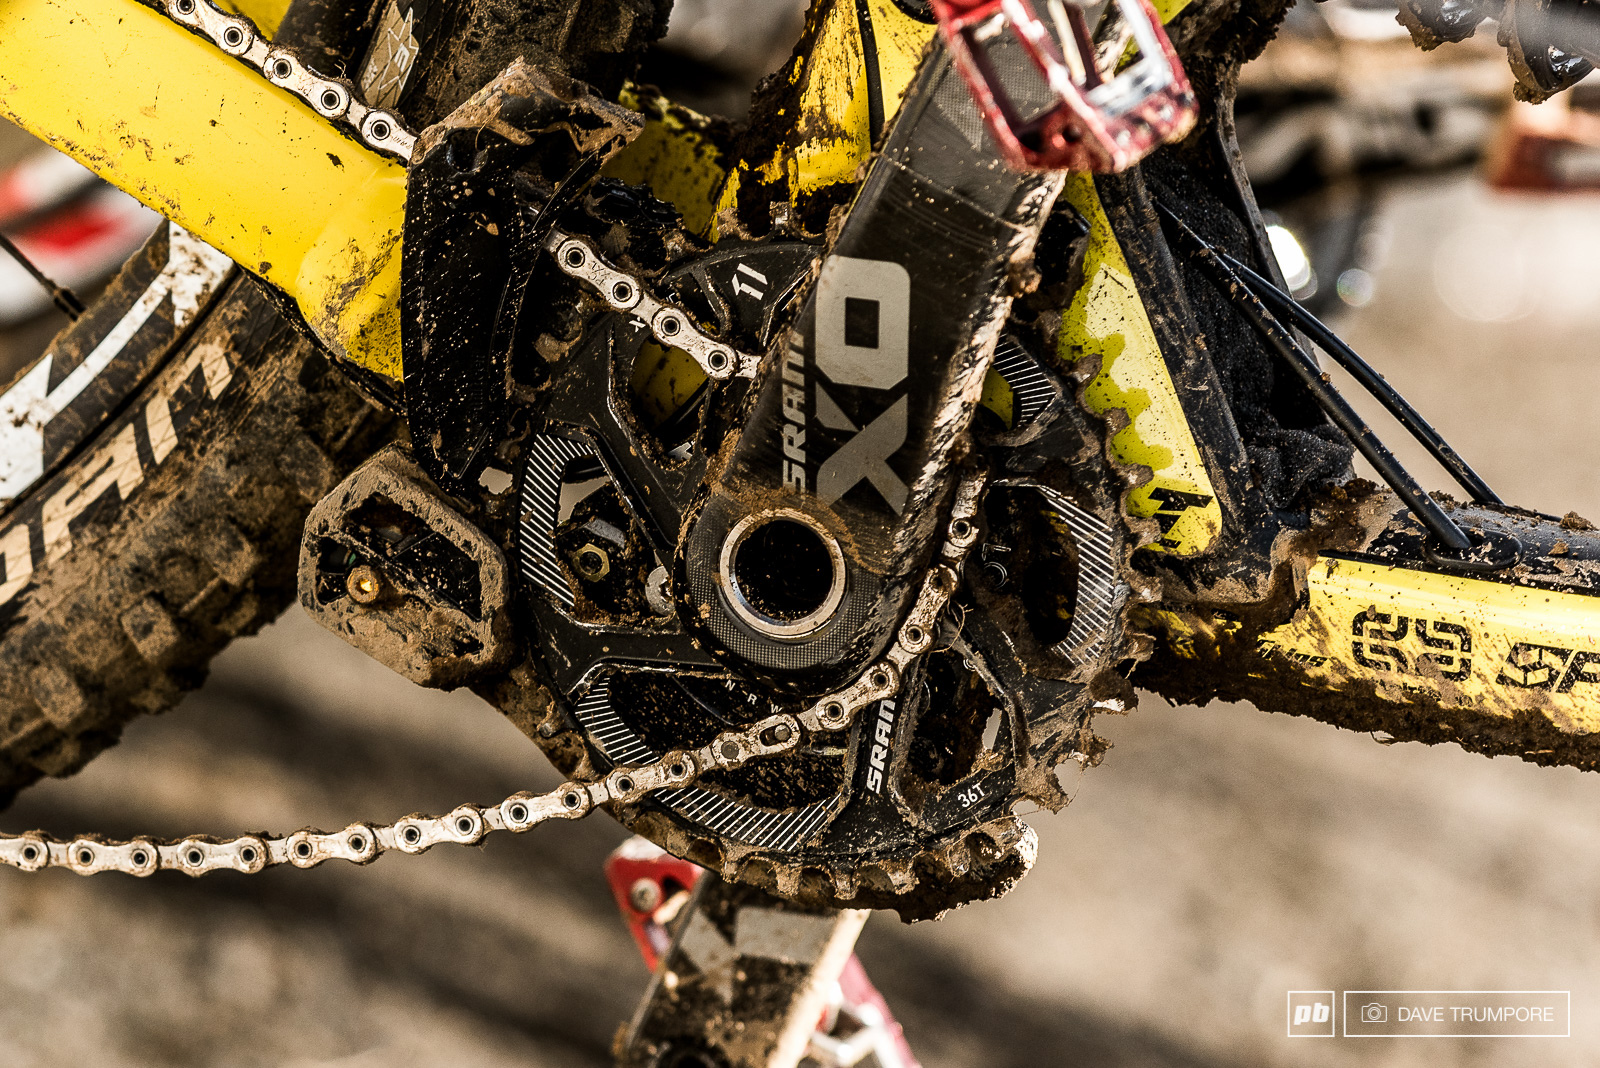 A derailed chain far above split one kept Bruni from putting in any pedal strokes for the final 2 minutes of the track in Canada.